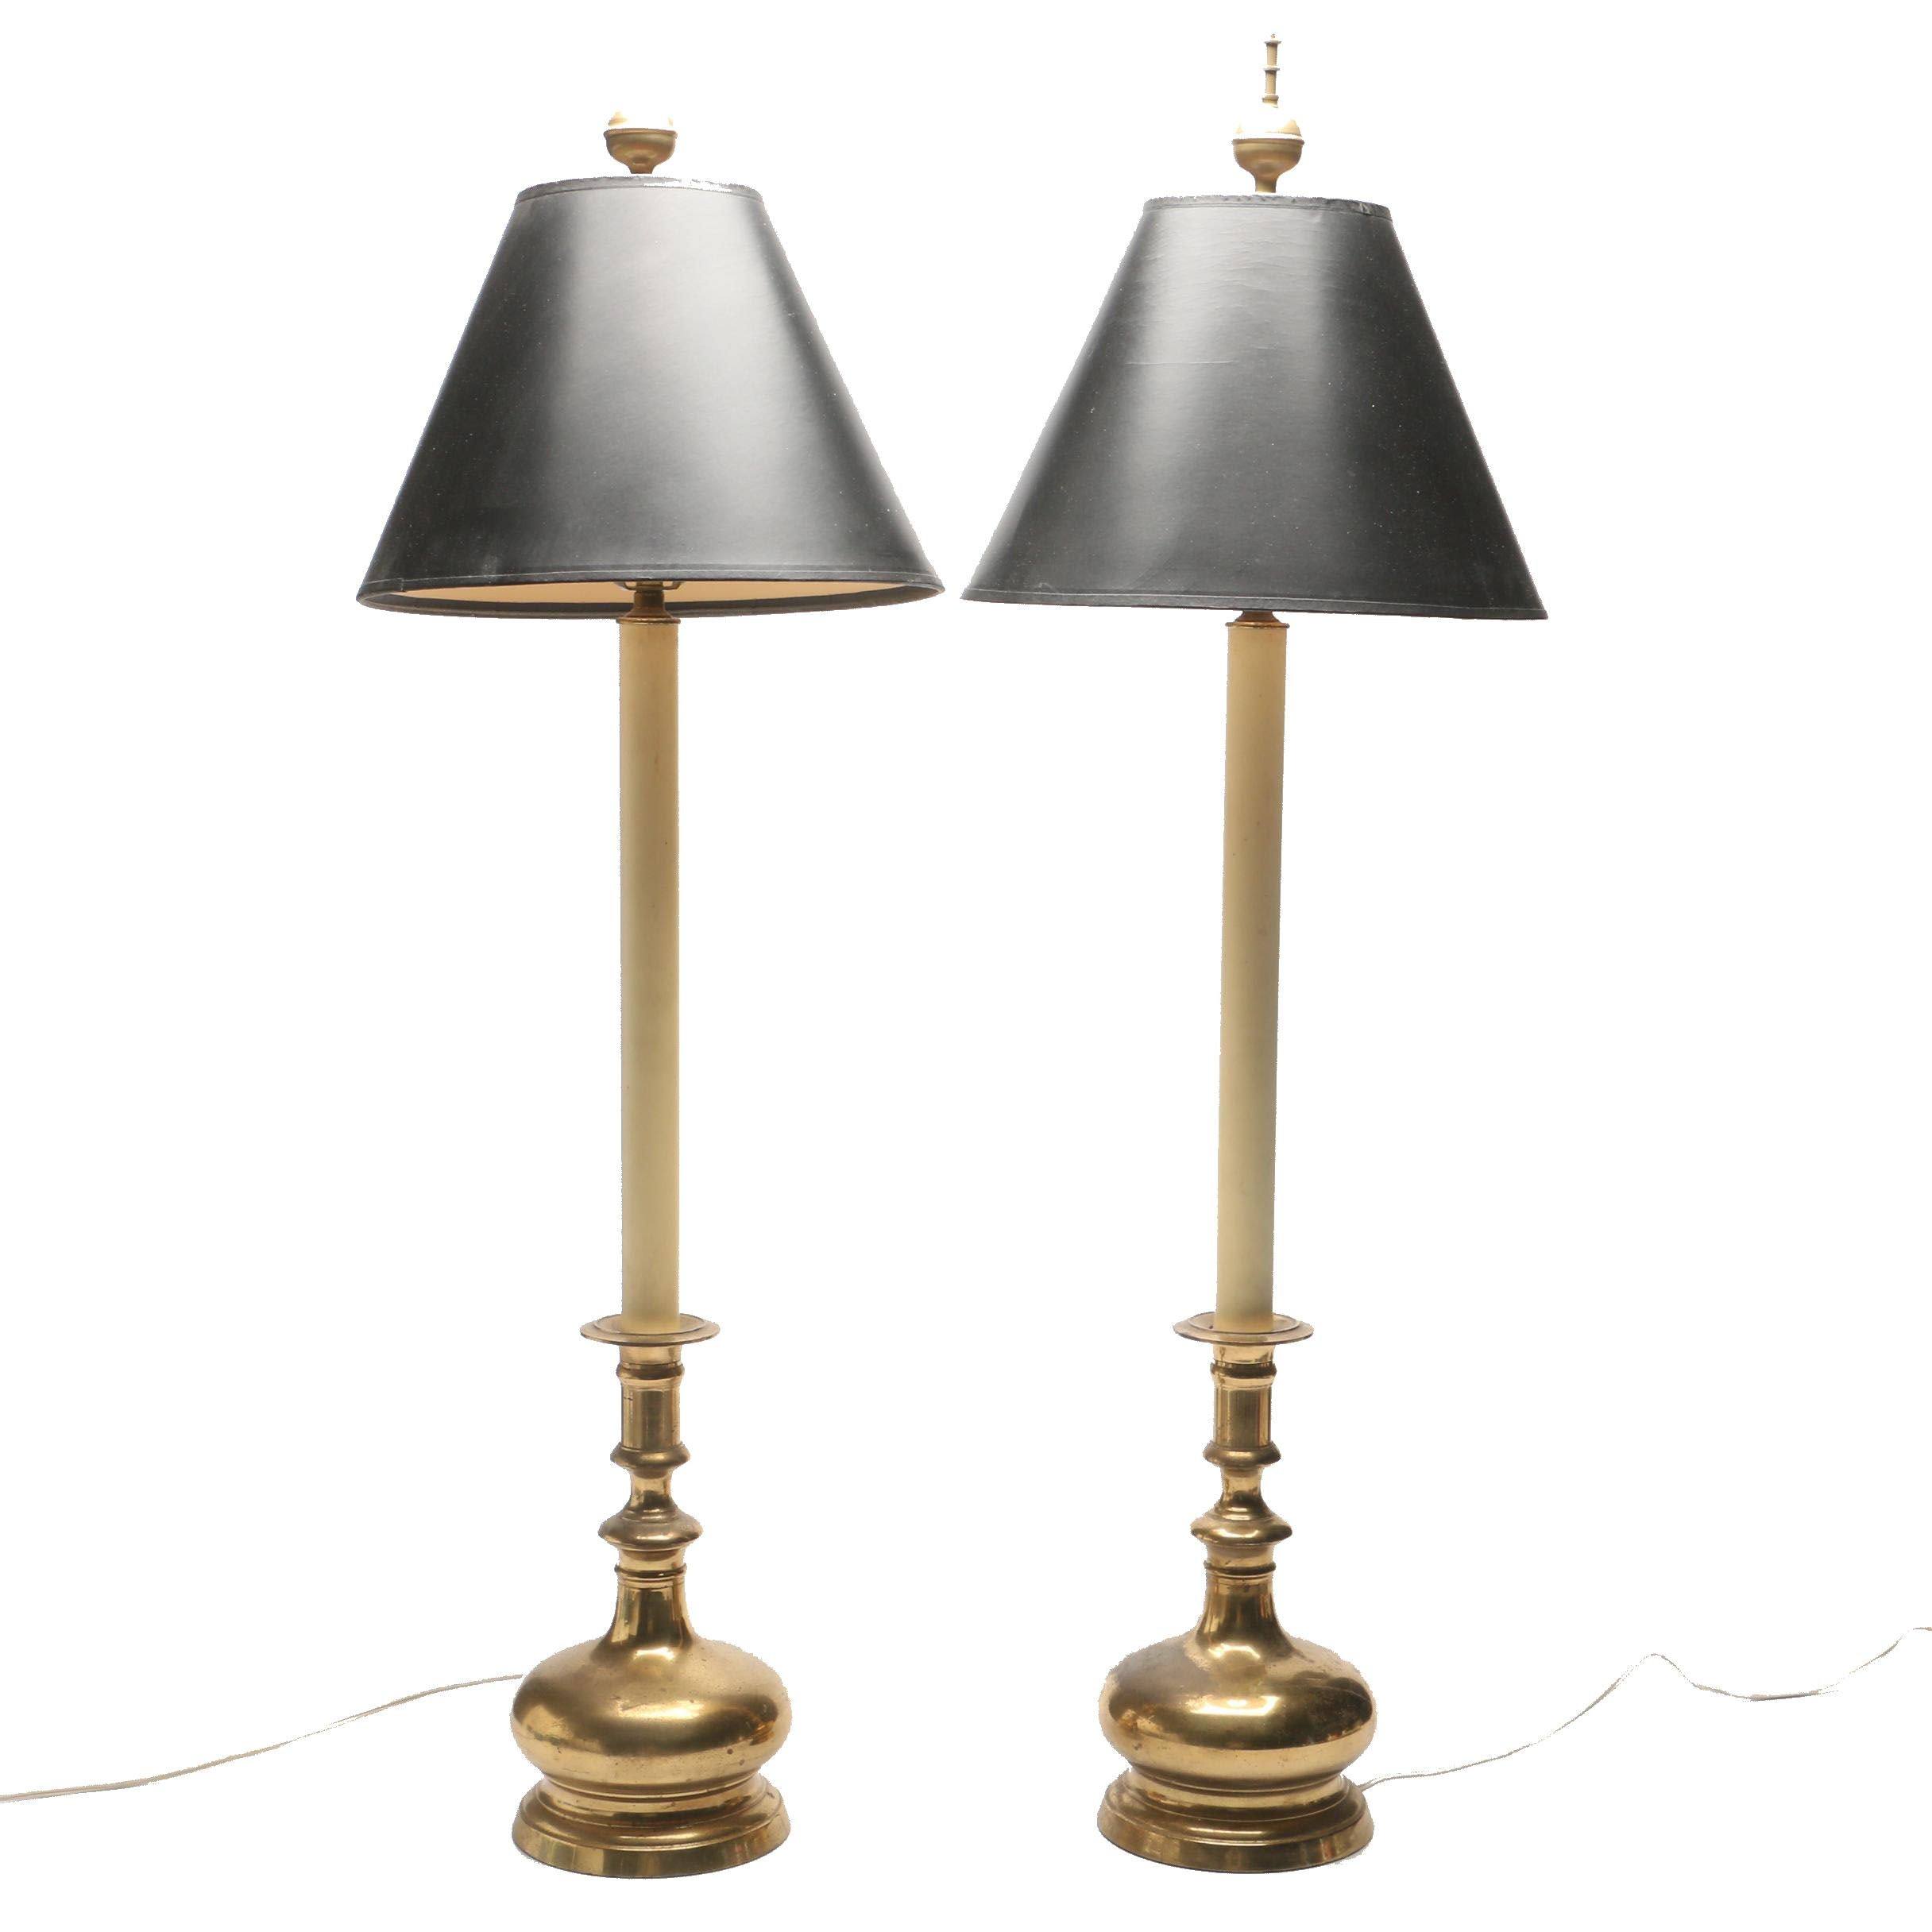 Brass Table Lamps with Black Shades